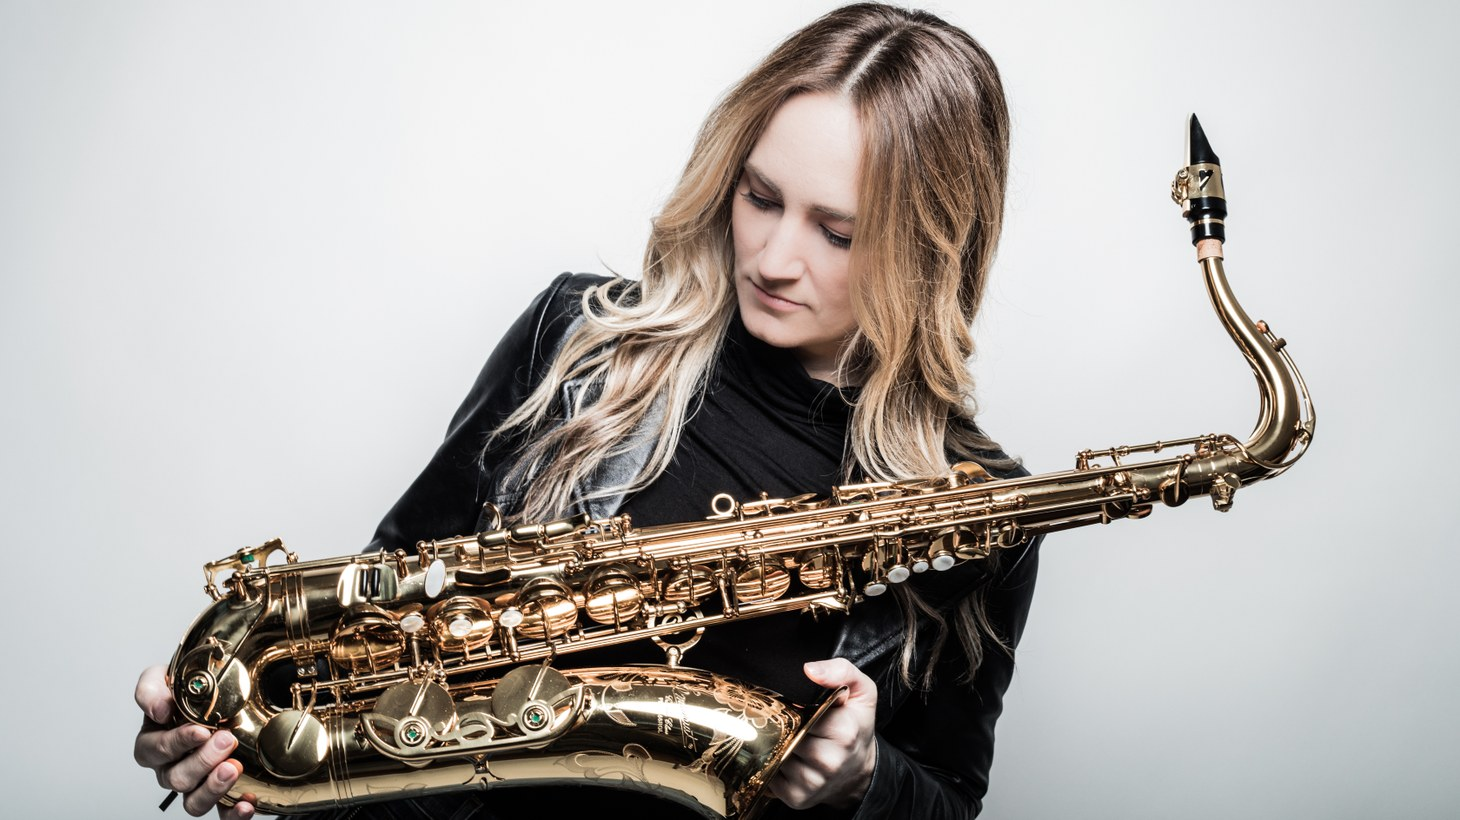 Saxophonist and composer Roxy Coss